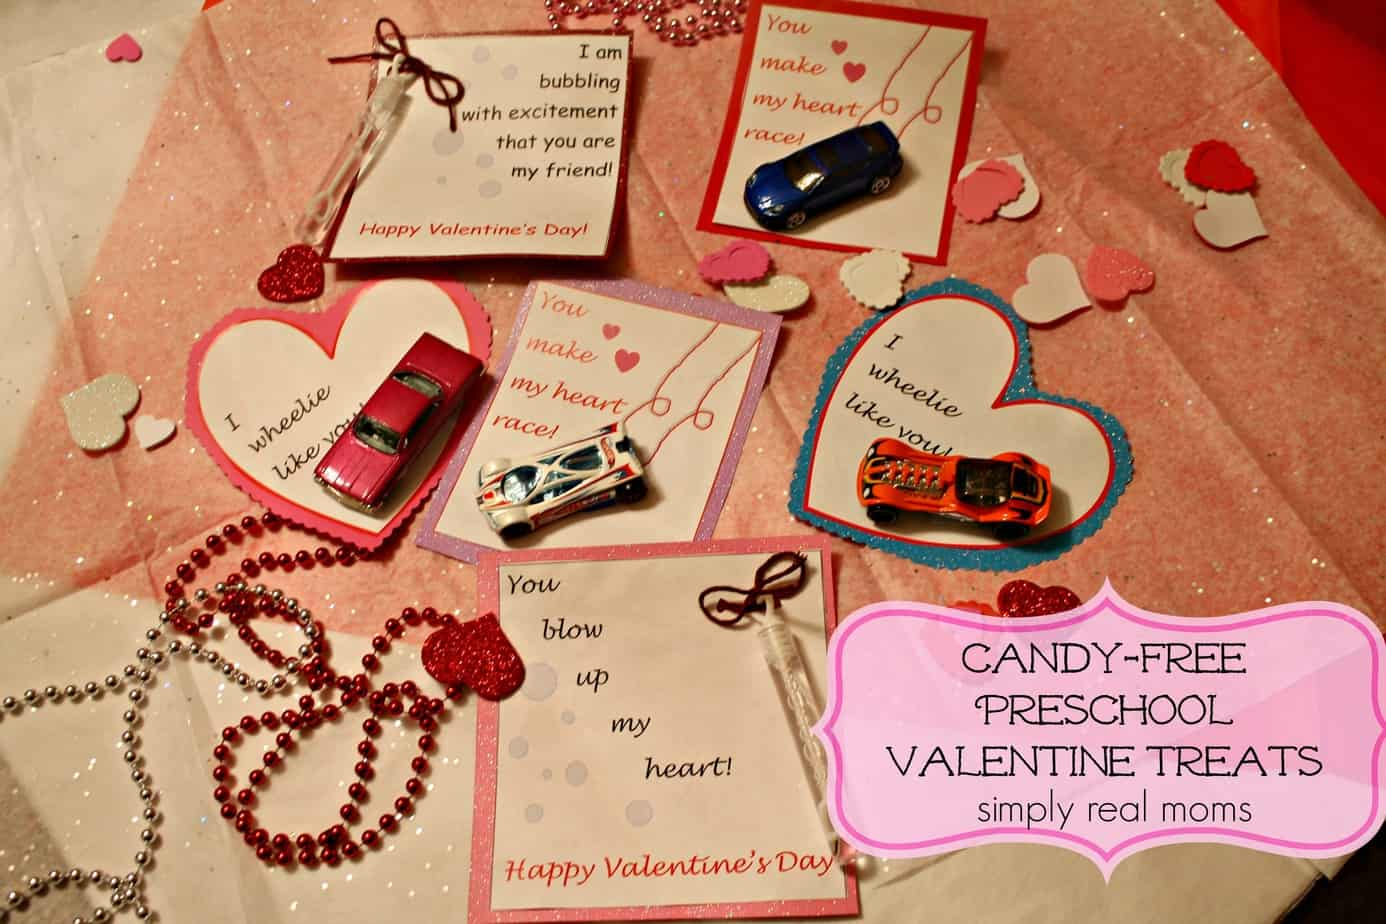 CandyFree Preschool Valentine Treats – Candy Valentine Card